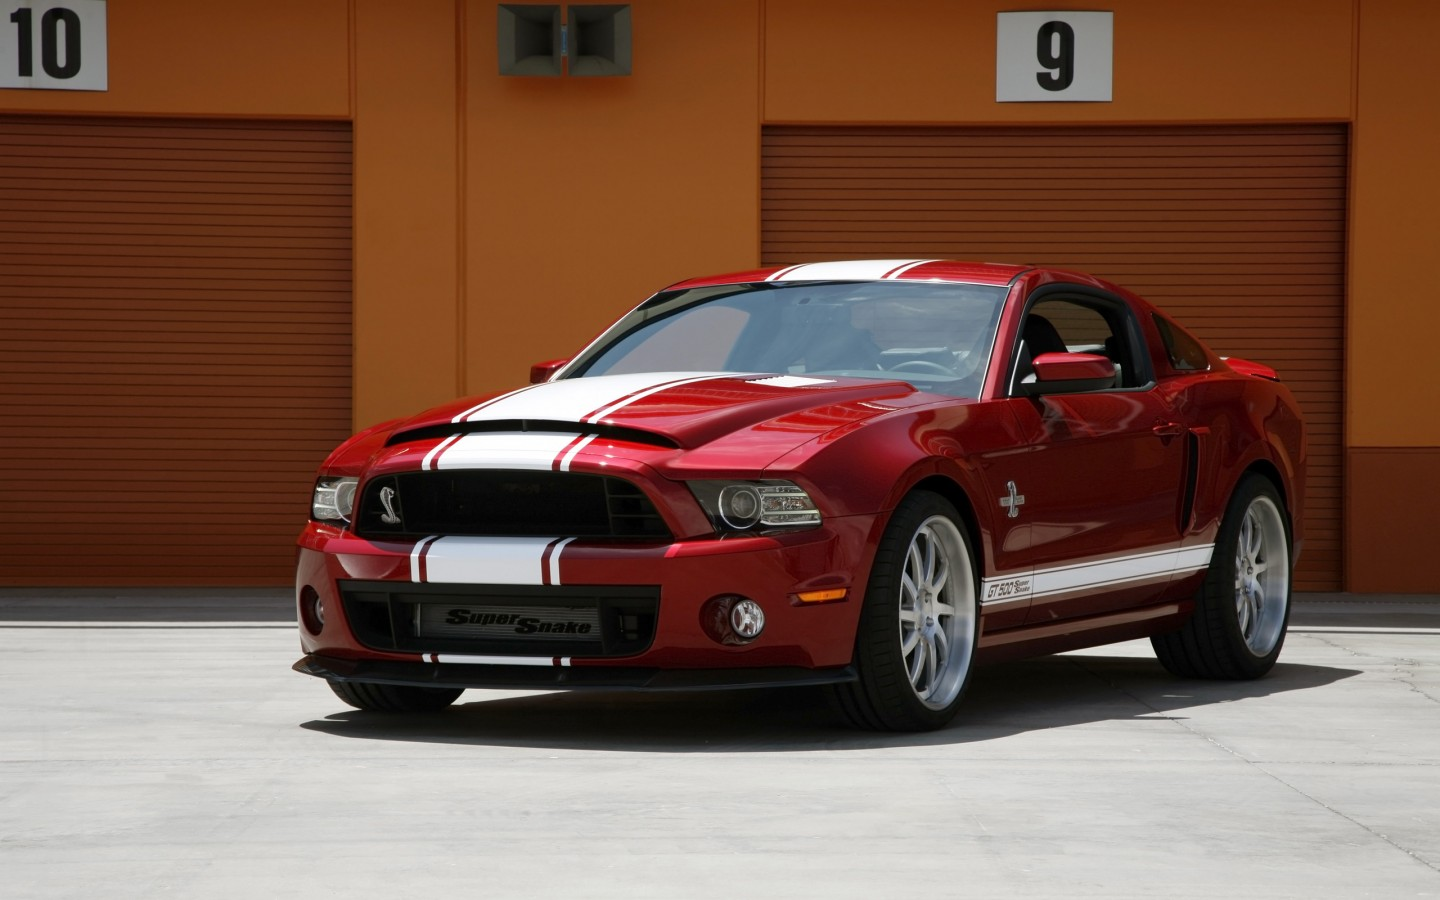 2014 Shelby GT500 Super Snake Wallpaper | HD Car ...